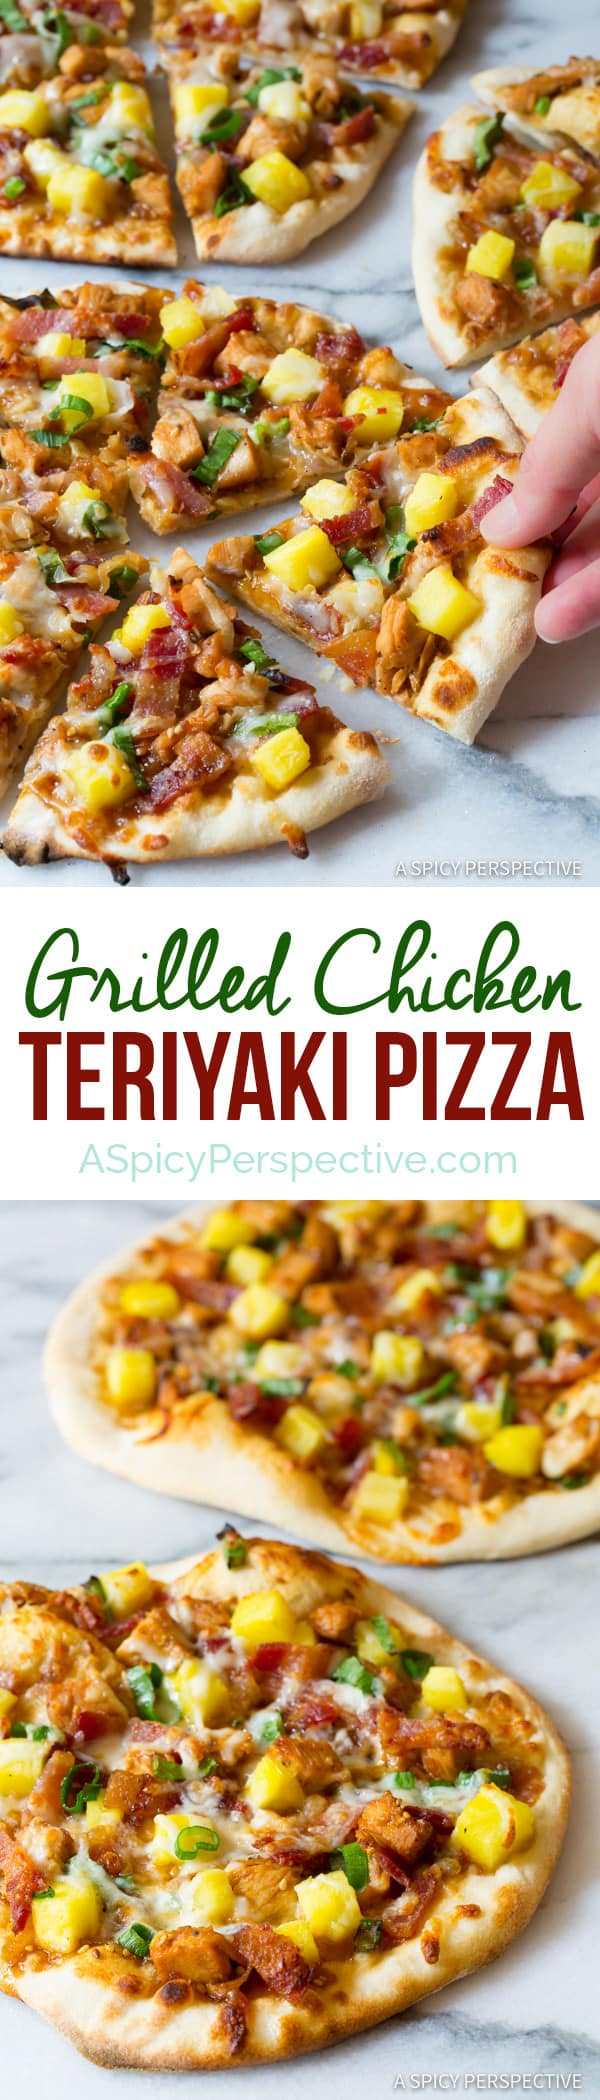 Easy Grilled Chicken Teriyaki Pizza | ASpicyPerspective.com